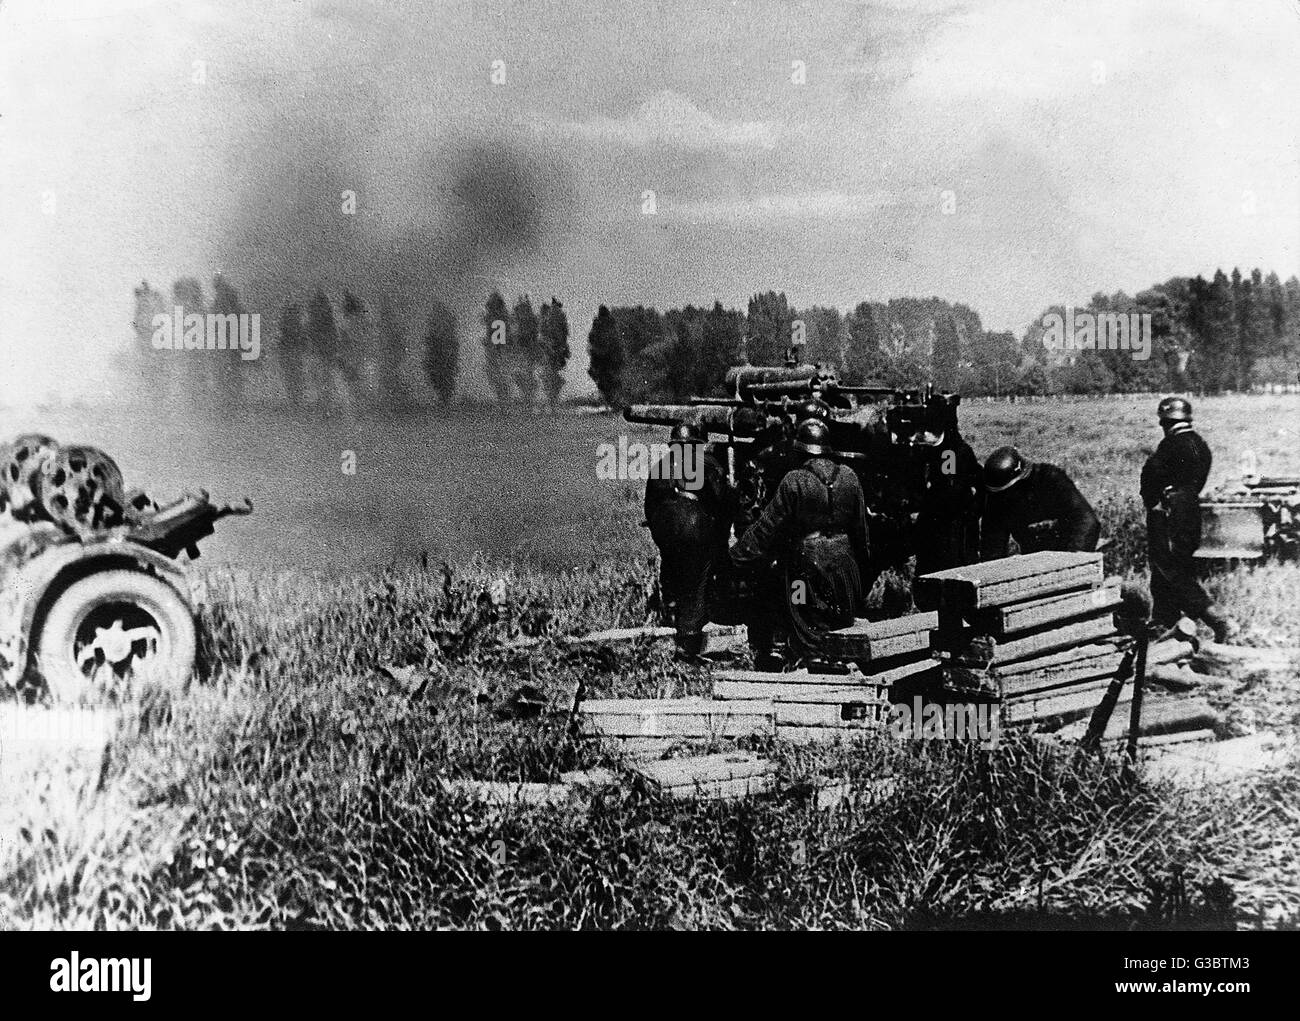 One of Rommel's 8.8cm anti-aircraft guns in action against British tanks     Date: May 1940 - Stock Image